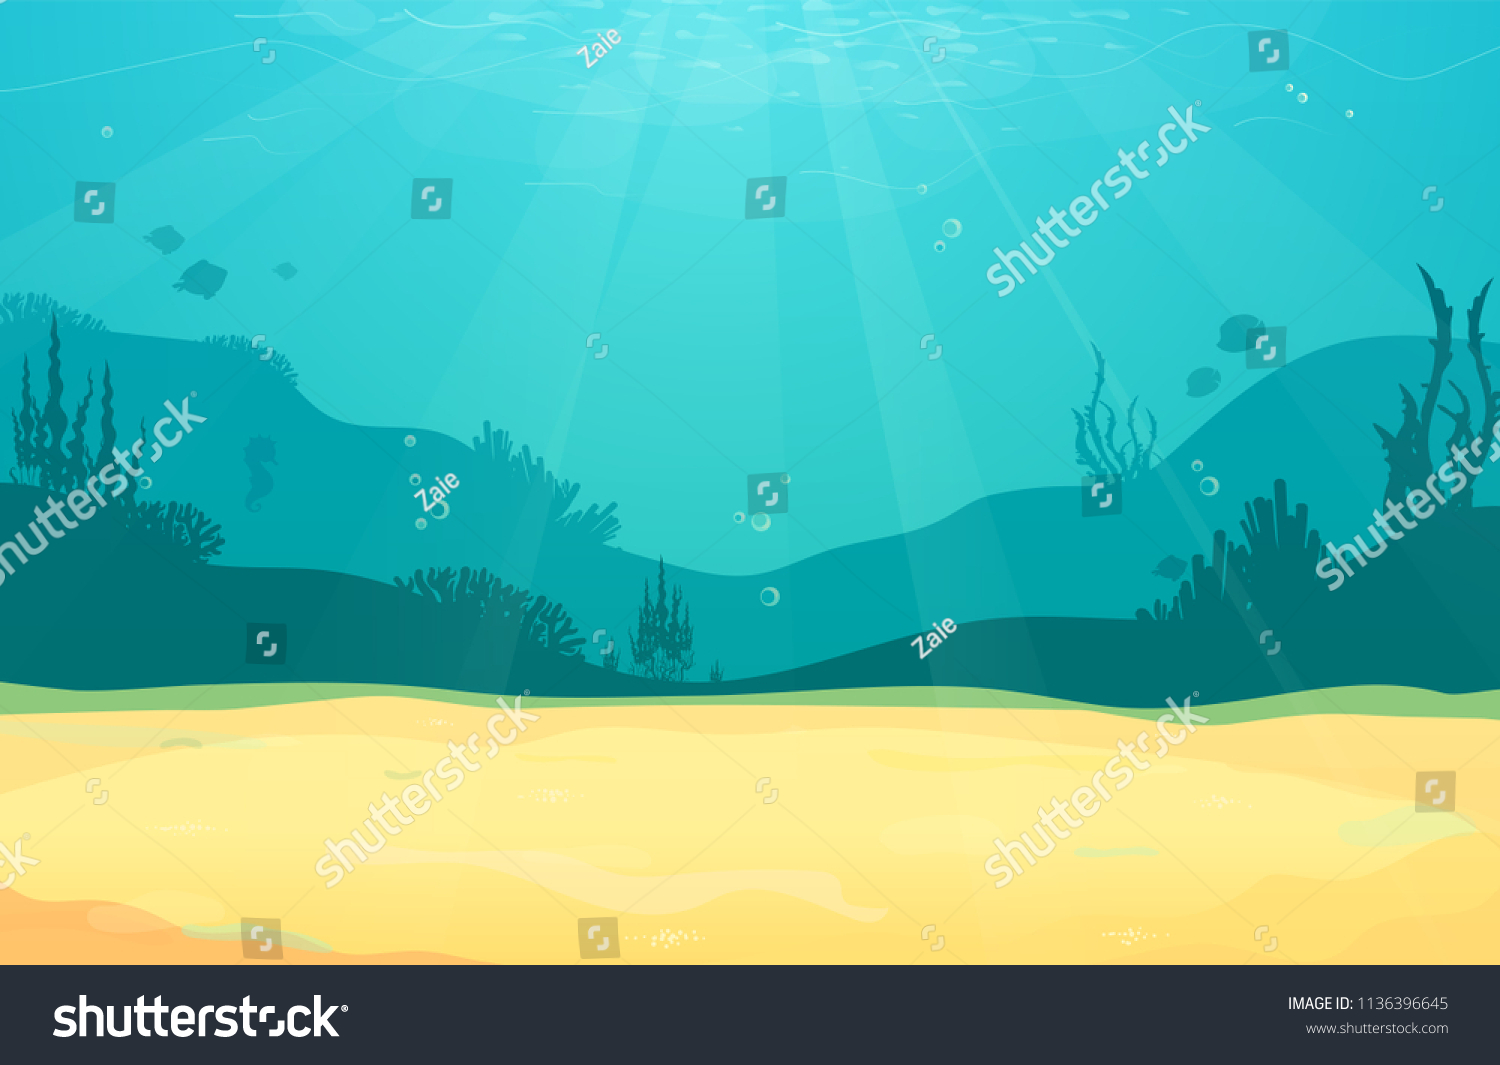 Underwater cartoon flat background with fish silhouette, sand, seaweed, coral. Ocean sea life, cute design. Vector illustration